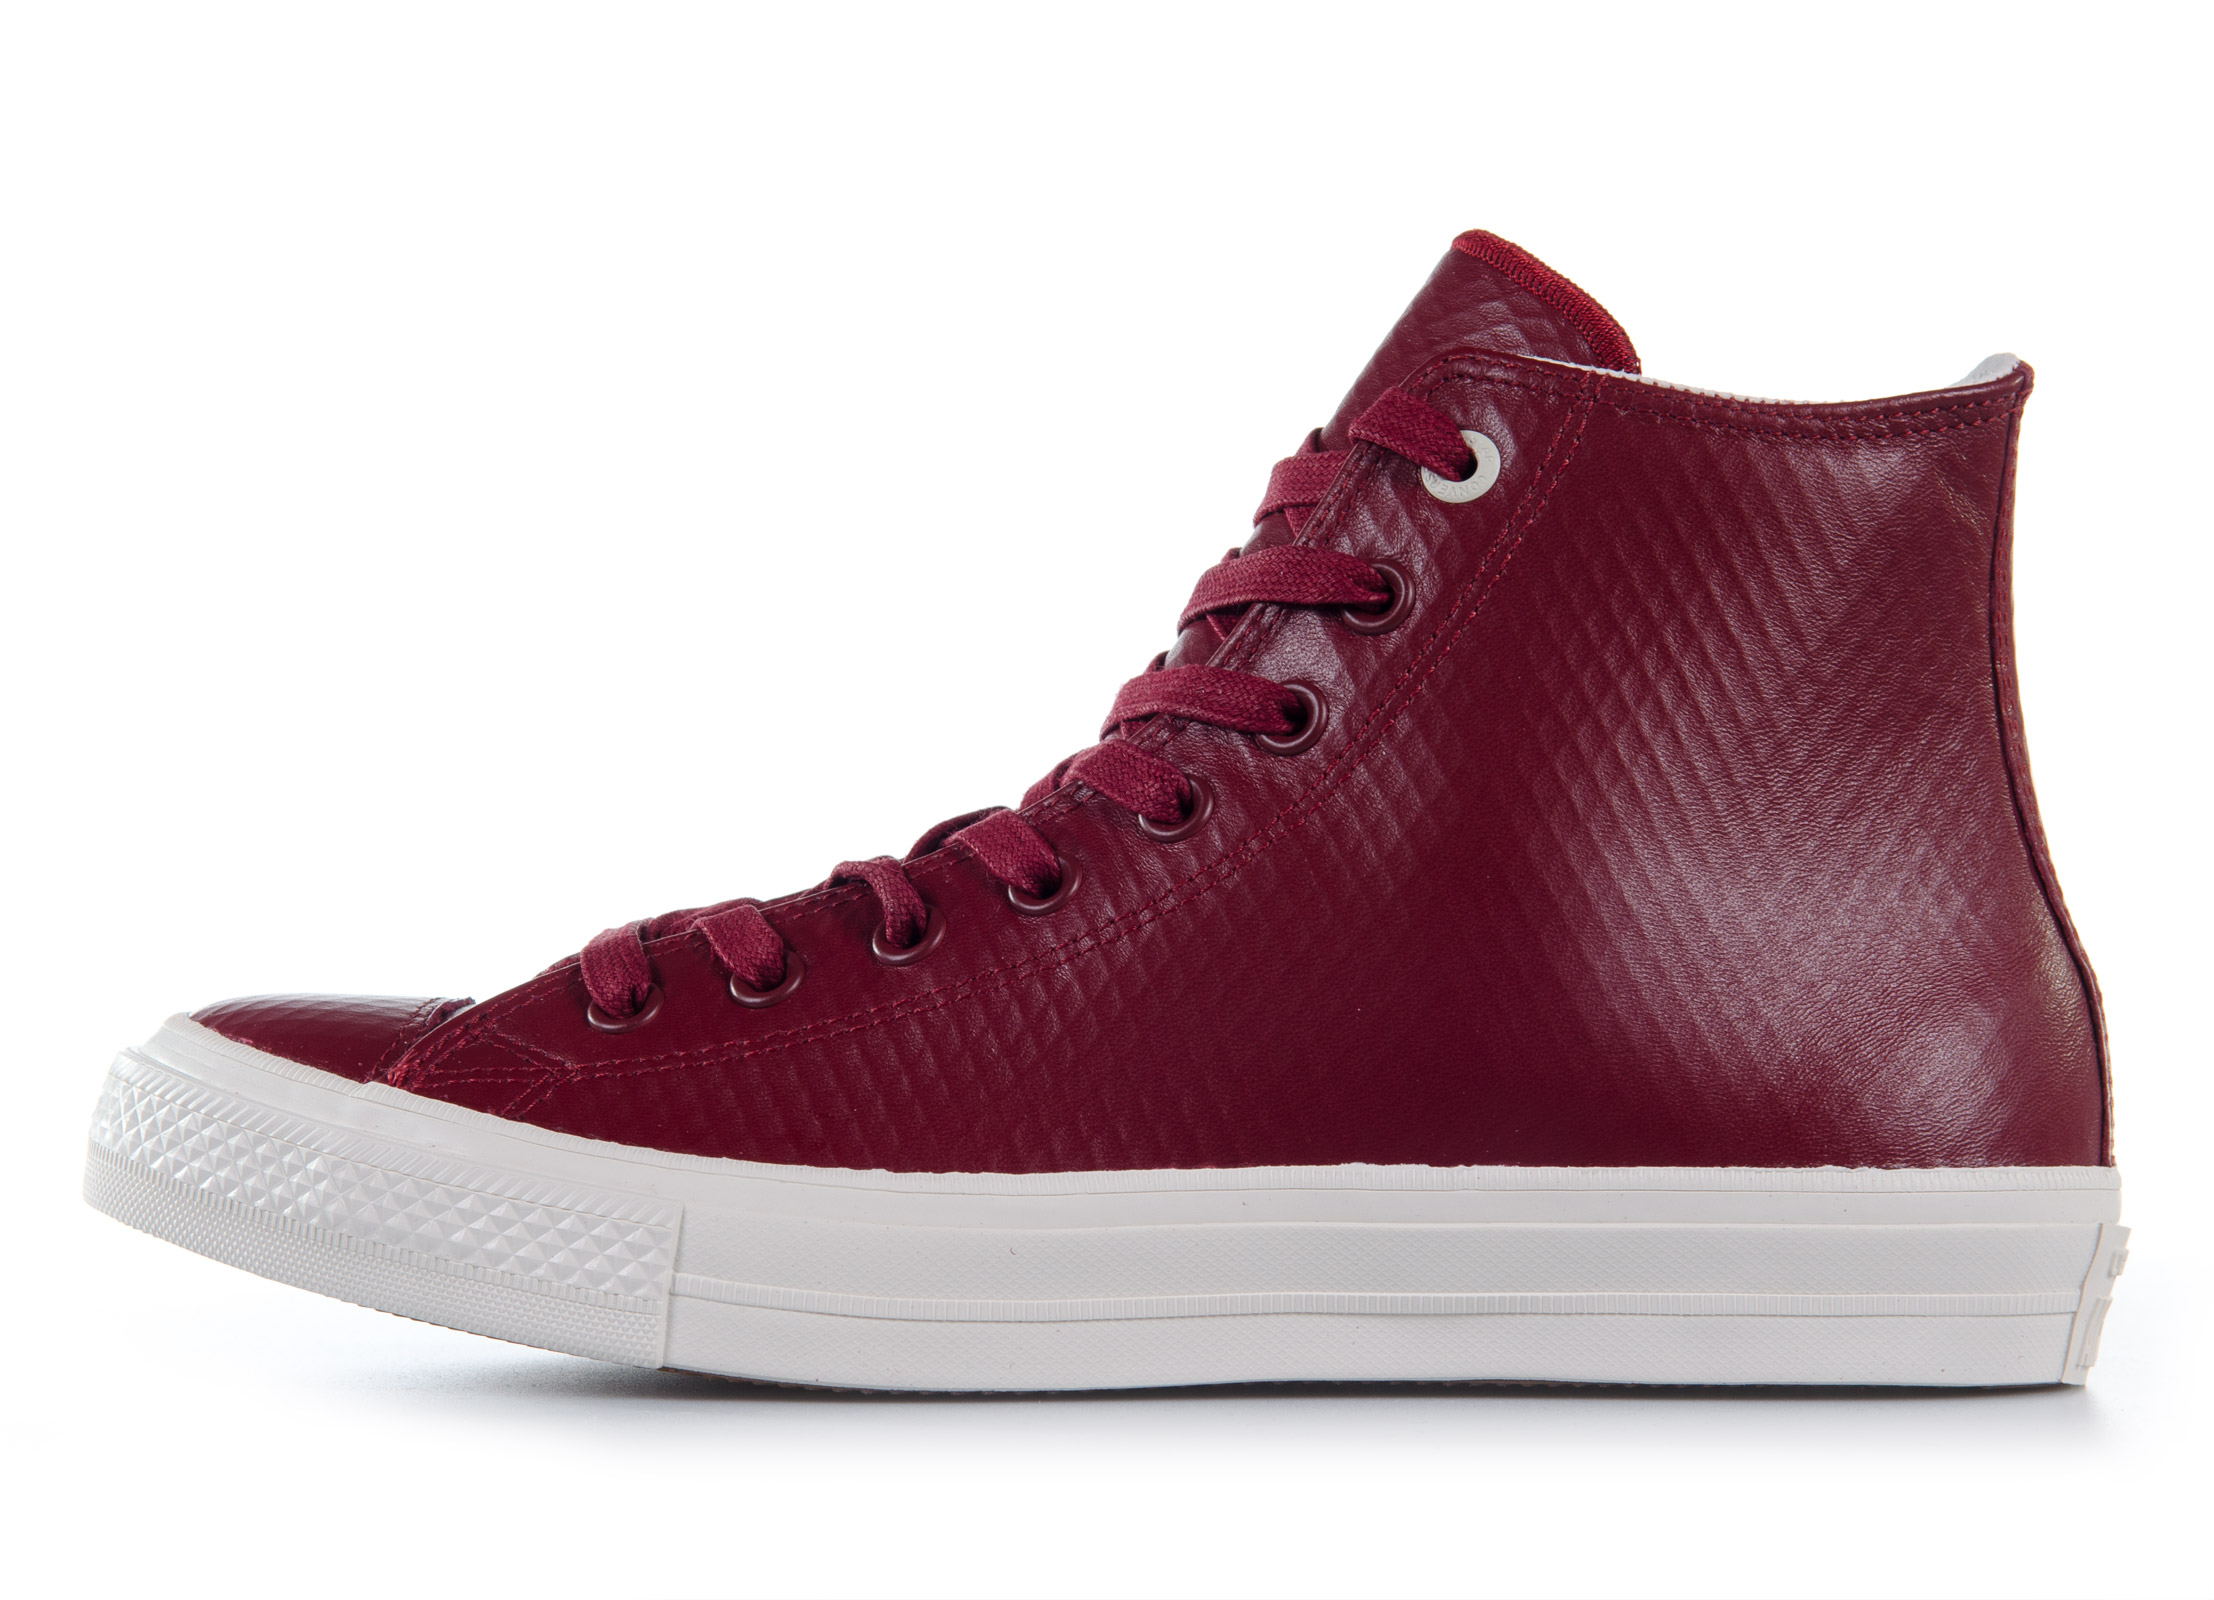 Converse All Star Chuck II Mesh Backed Leather High Top 153553C Μπορντό